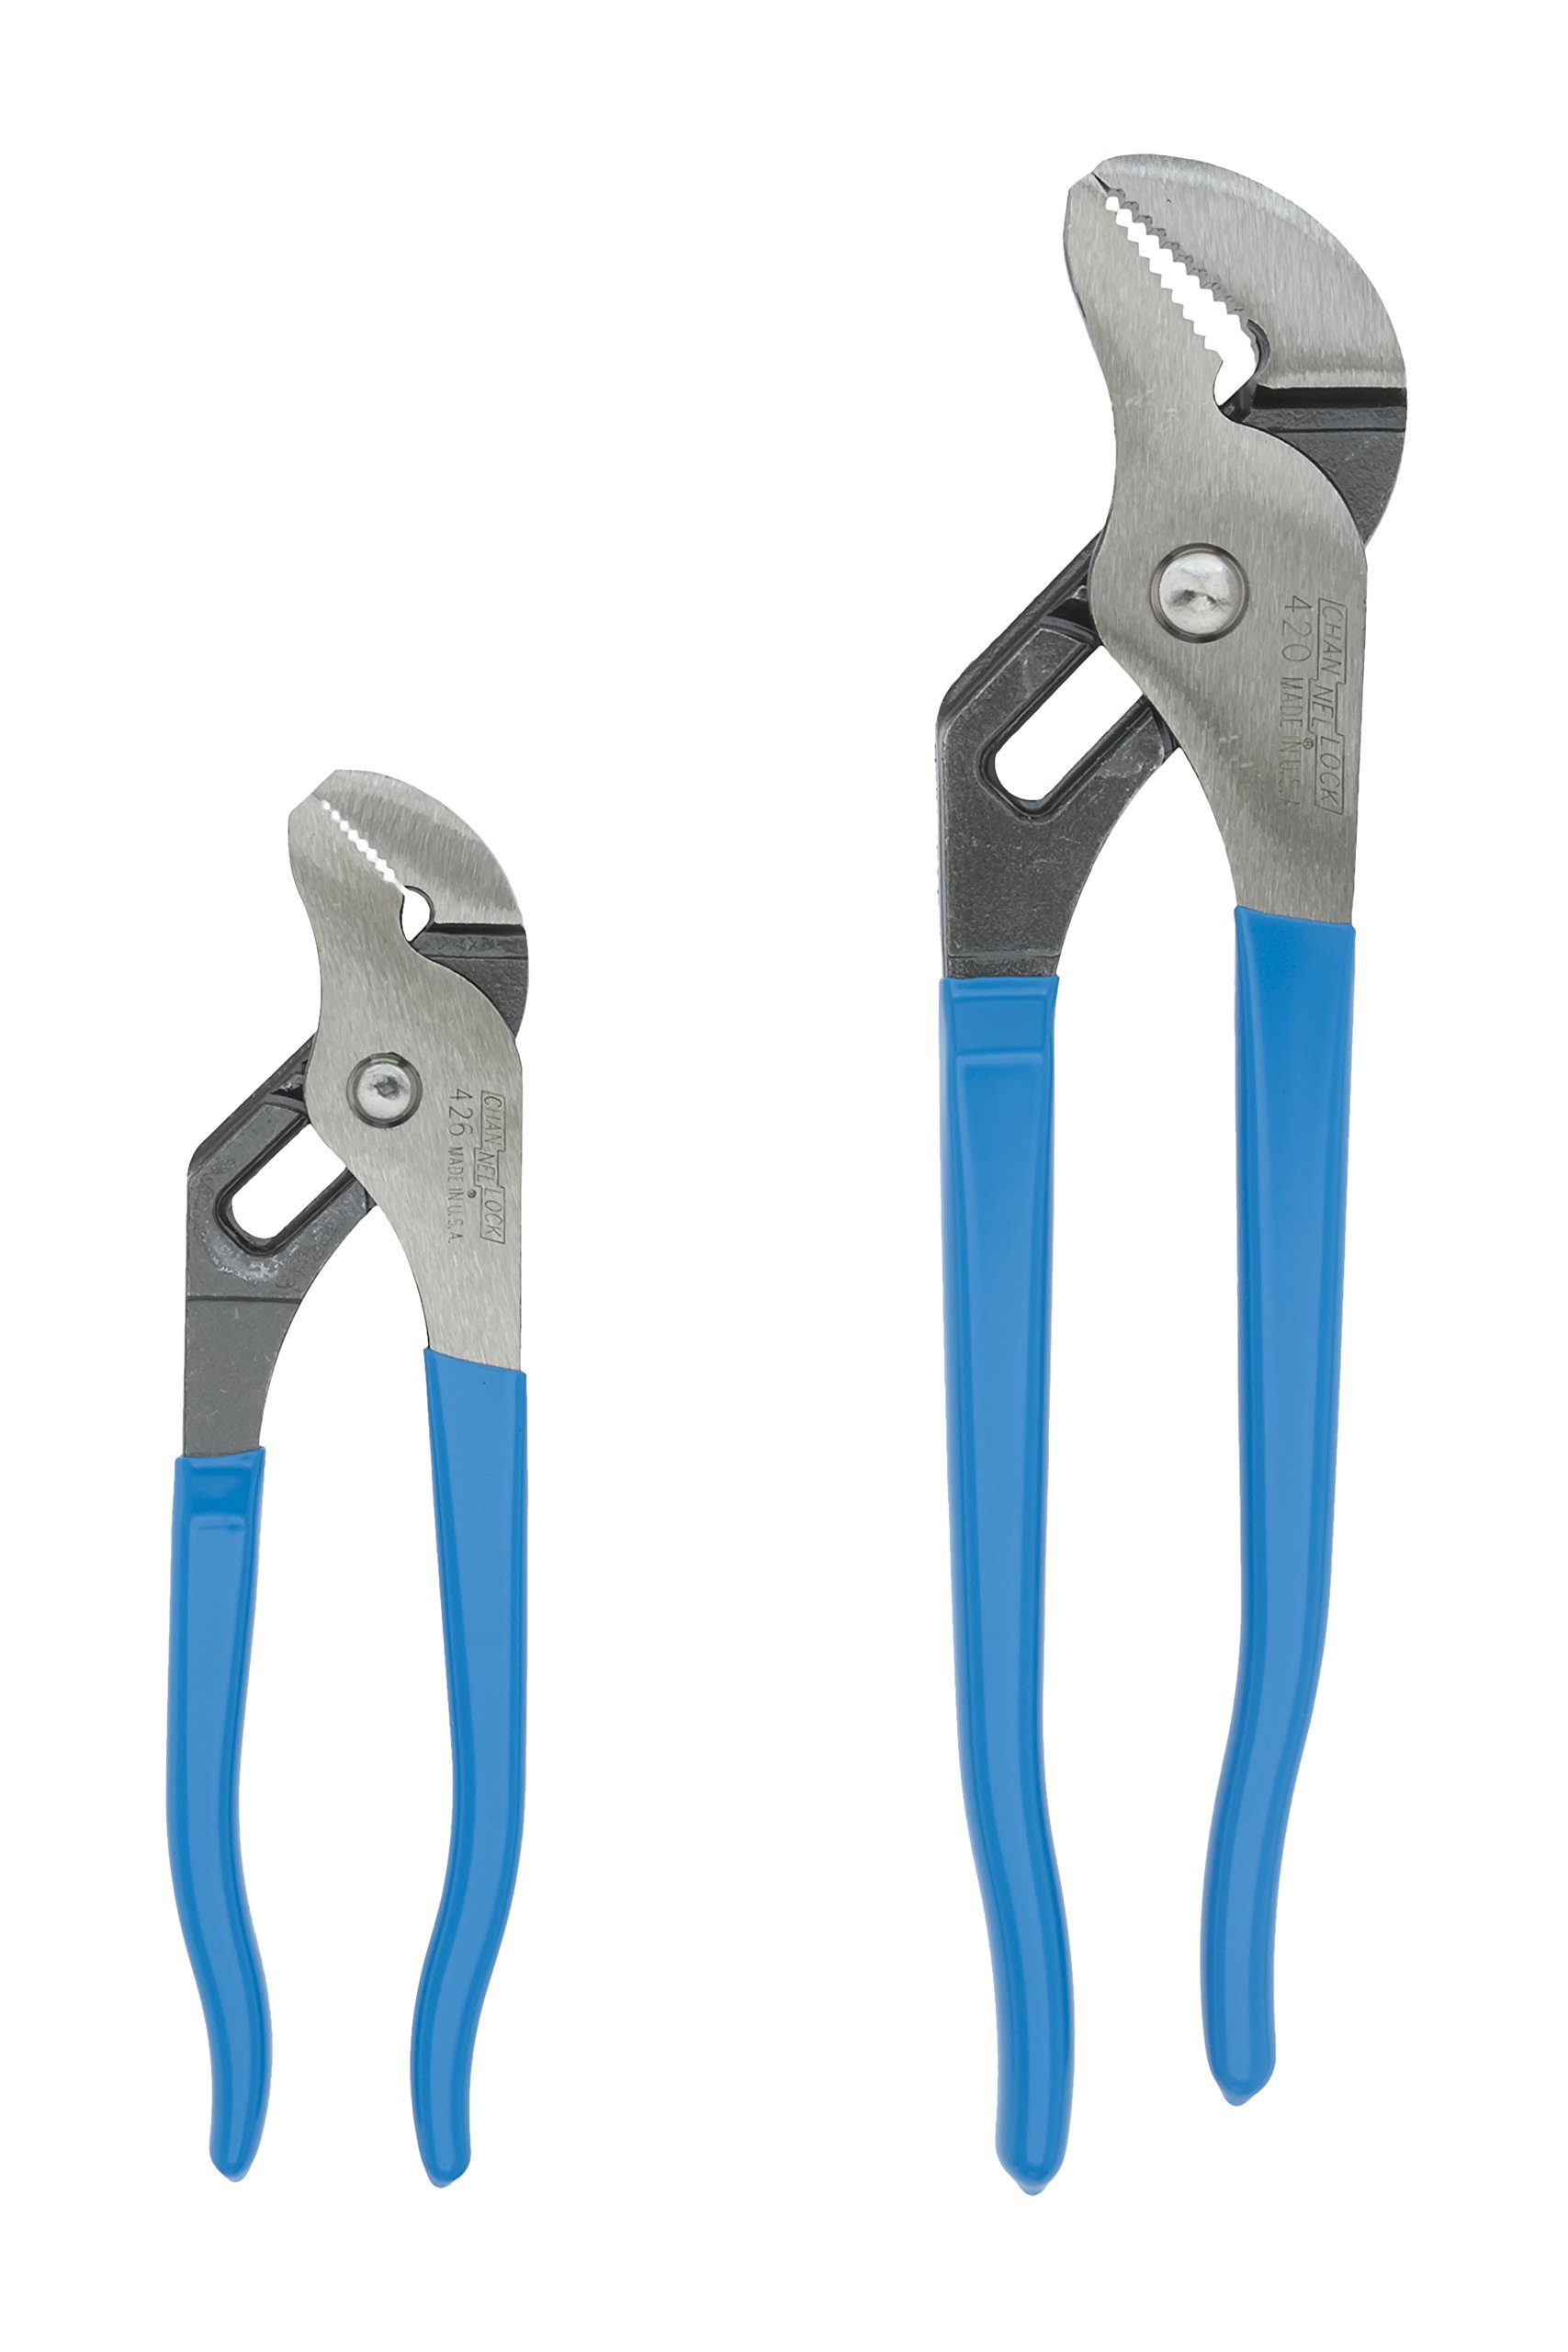 Channellock GS-1 2 Piece 9-1/2-Inch and 6-1/2-Inch Tongue and Groove Plier Set by Channellock (Image #1)